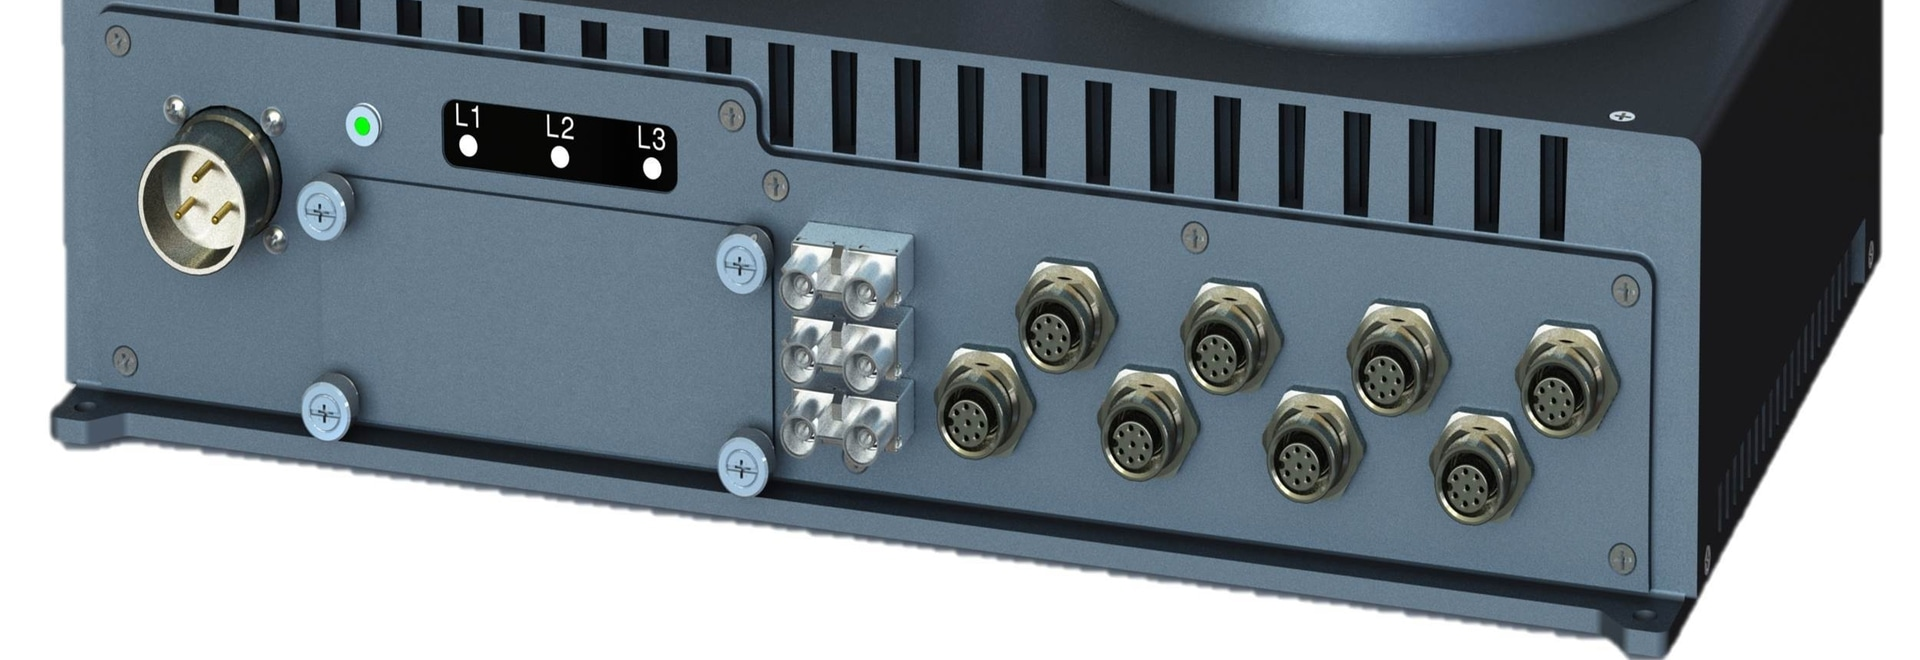 Delivering the power to fast-track autonomous in-vehicle designs, Kontron unveils new Development and HPEC platforms